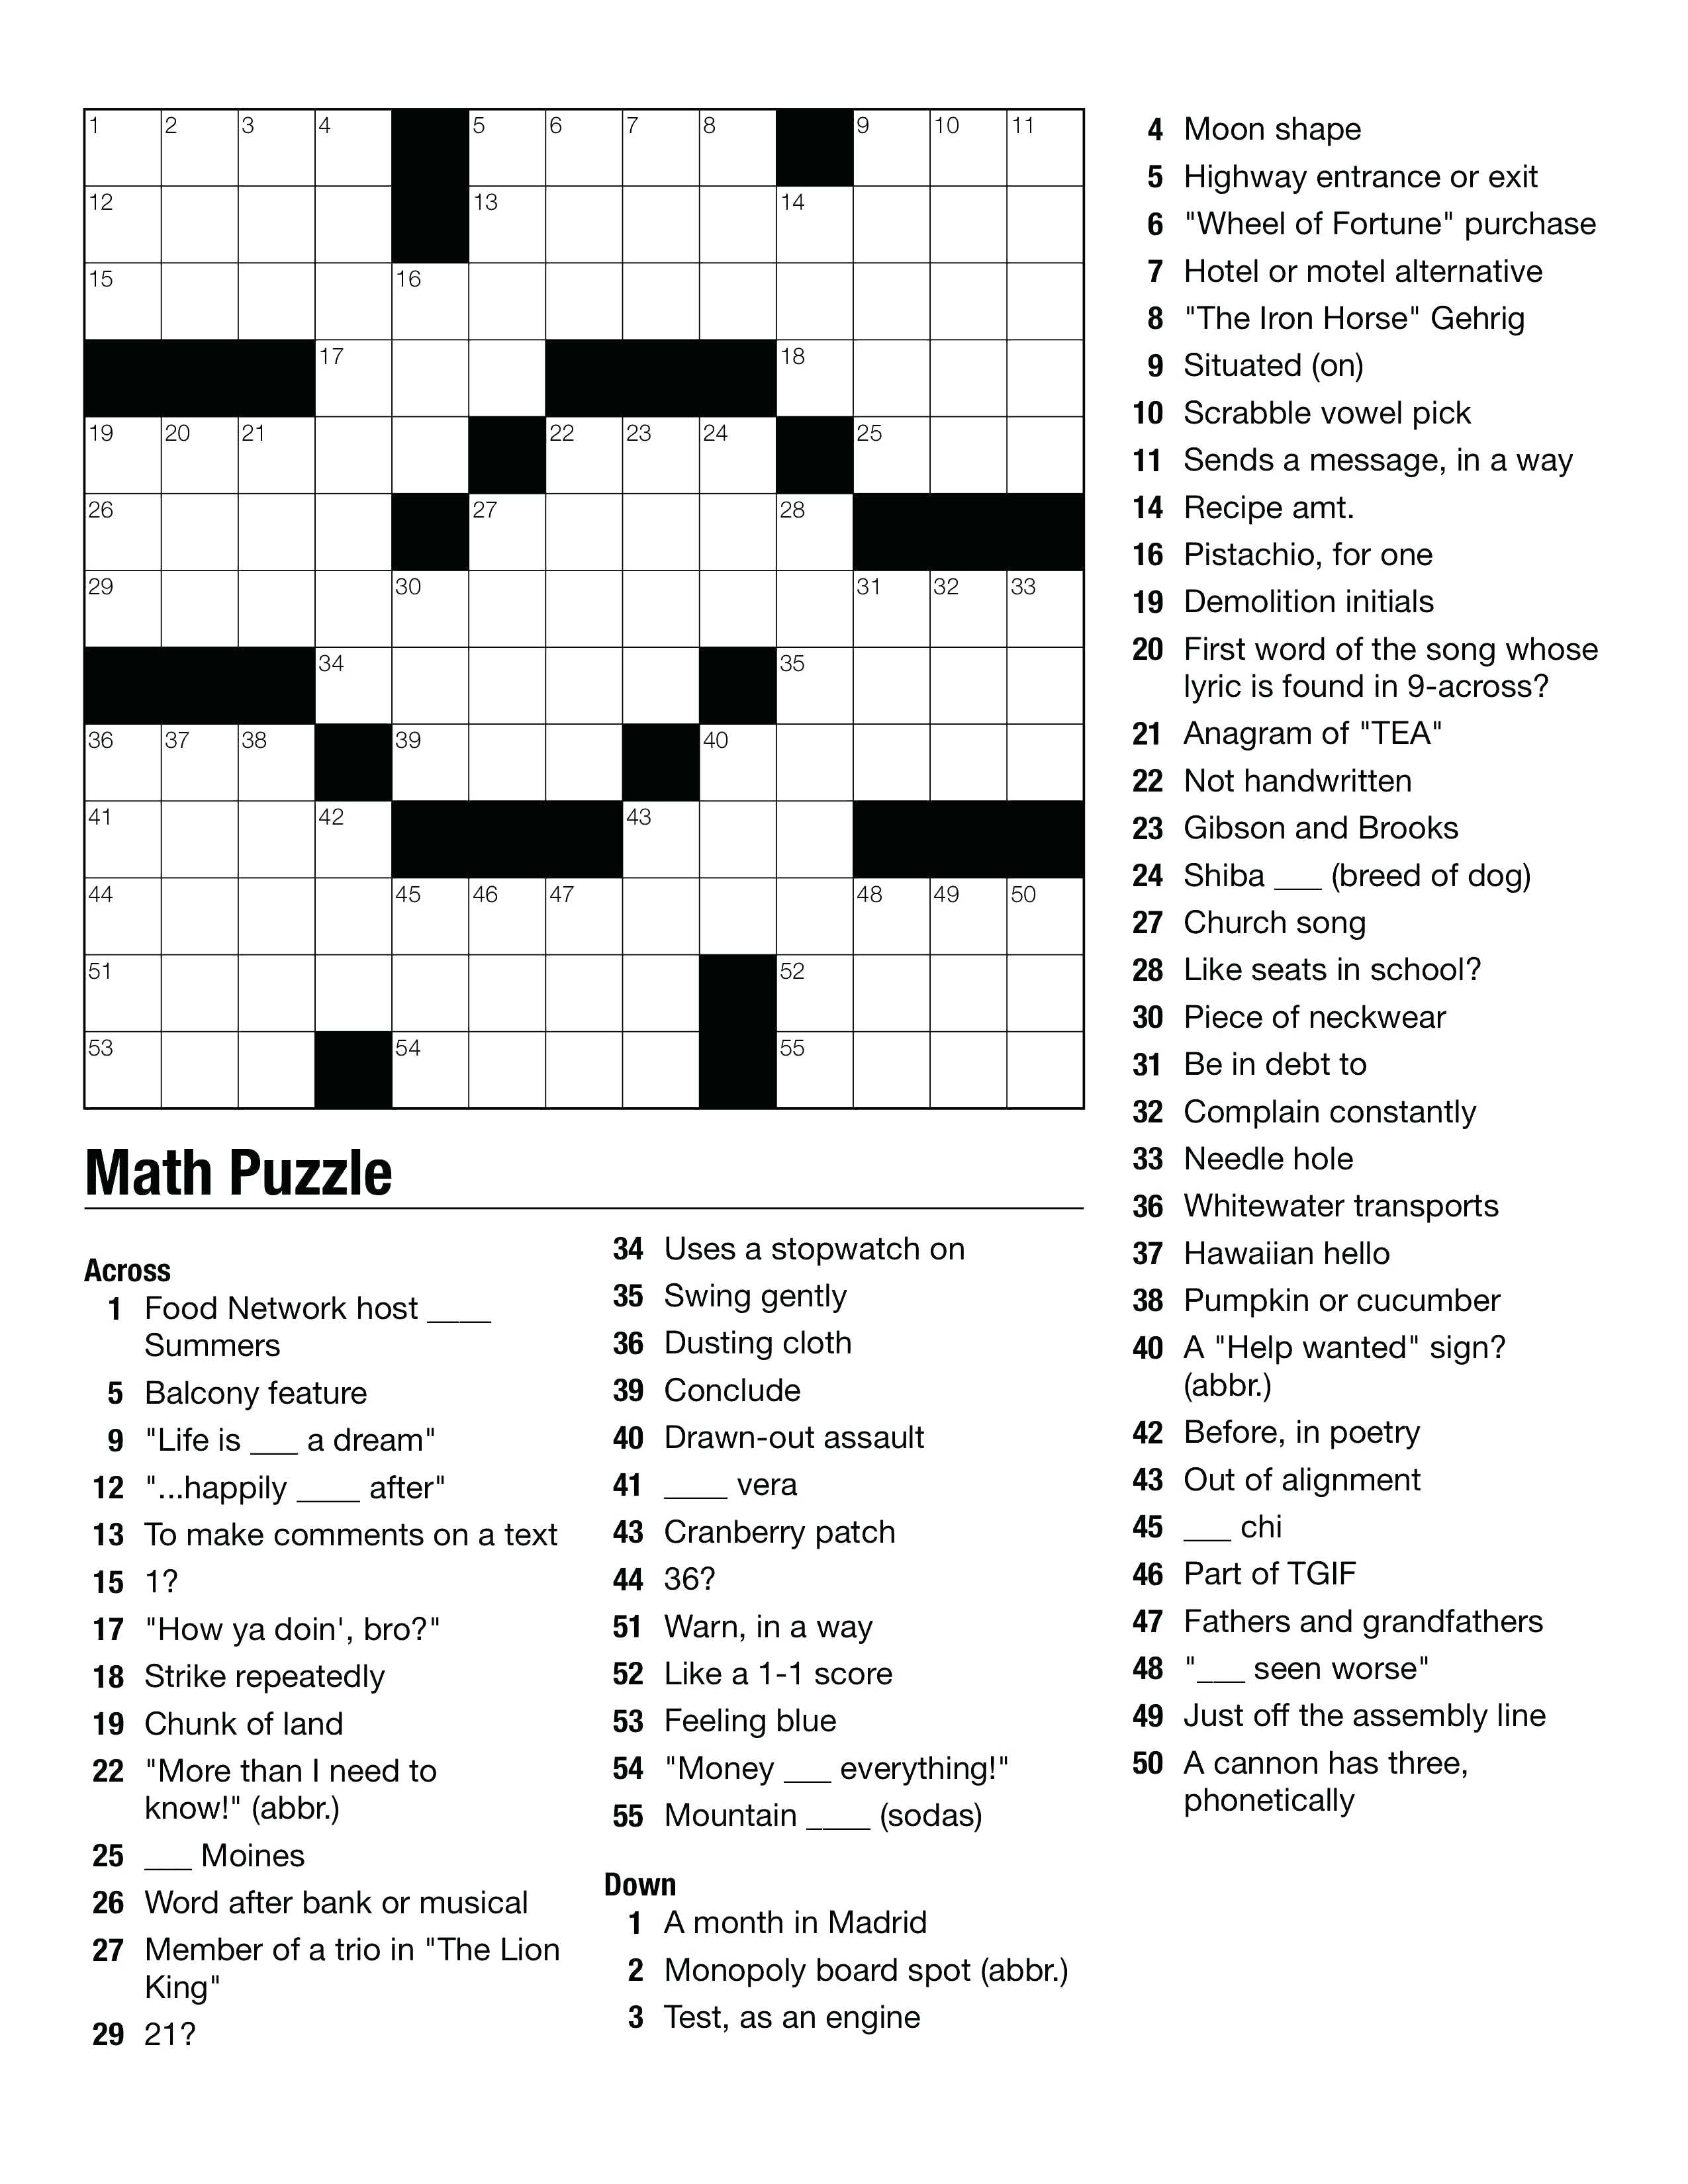 middle school crossword puzzles middle school crossword crossword puzzle crossword middle school puzzles